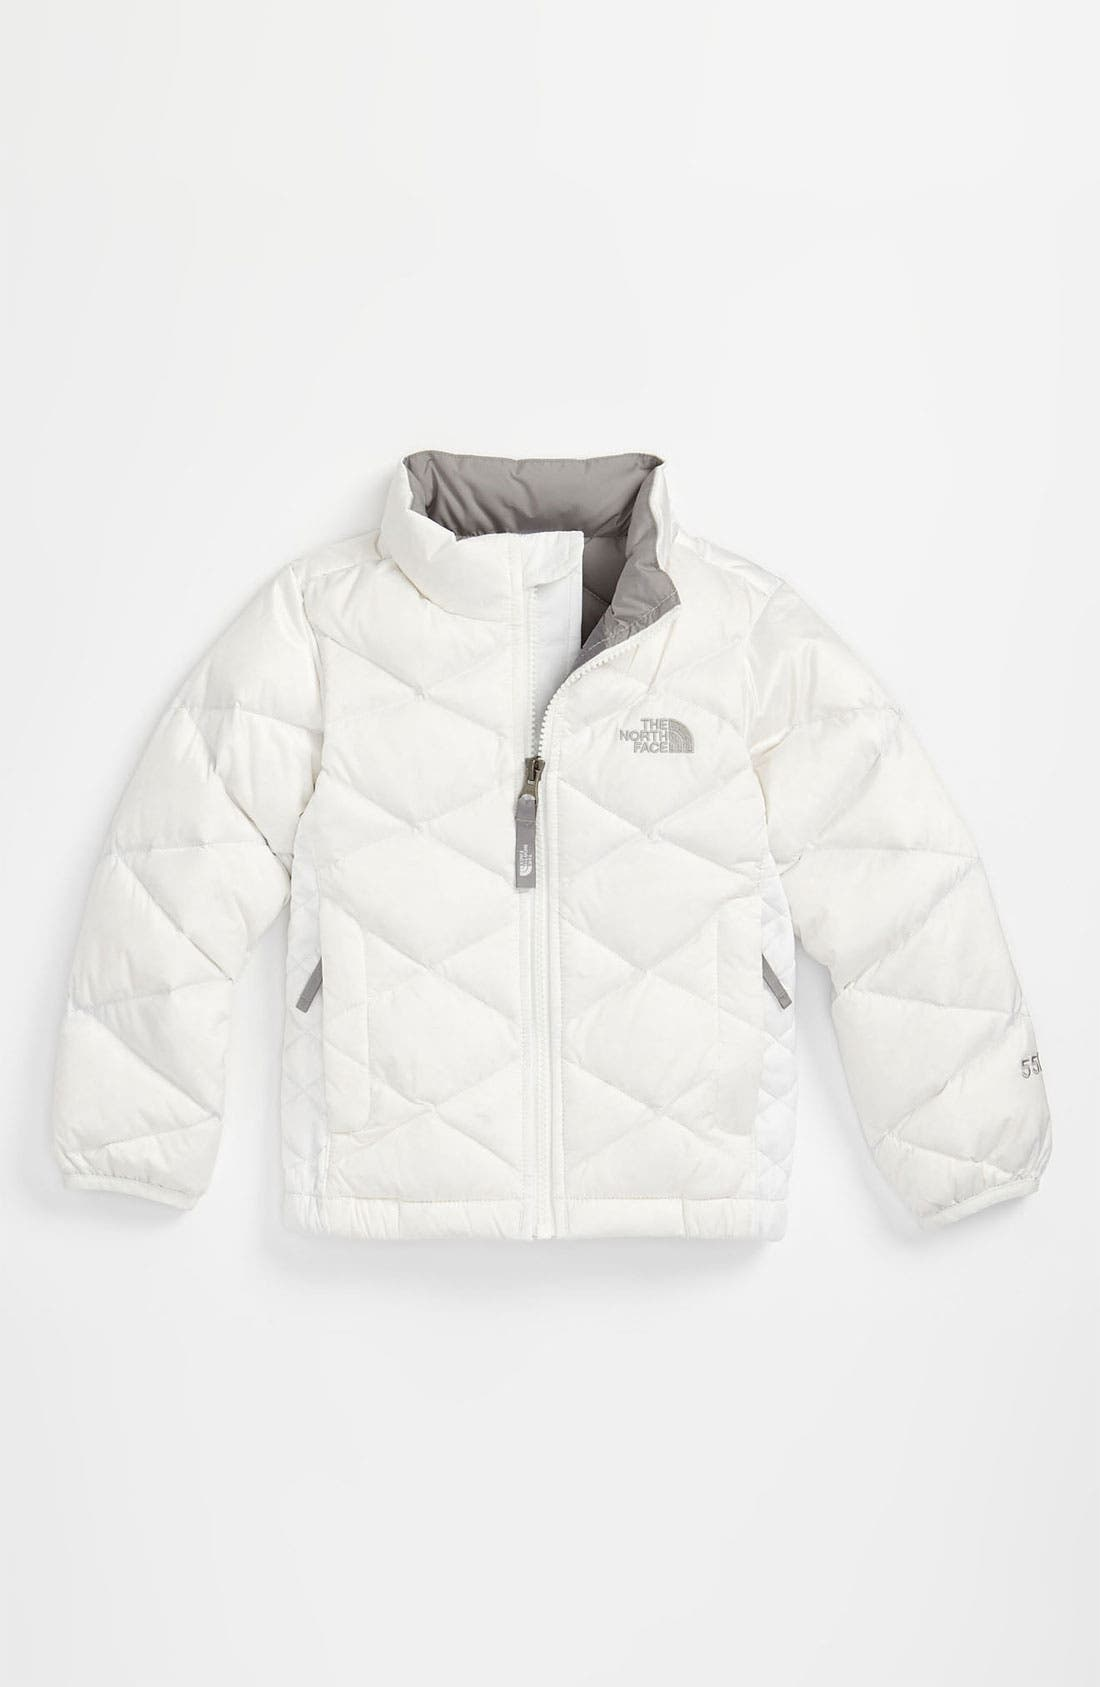 Main Image - The North Face 'Aconcagua' Jacket (Toddler)